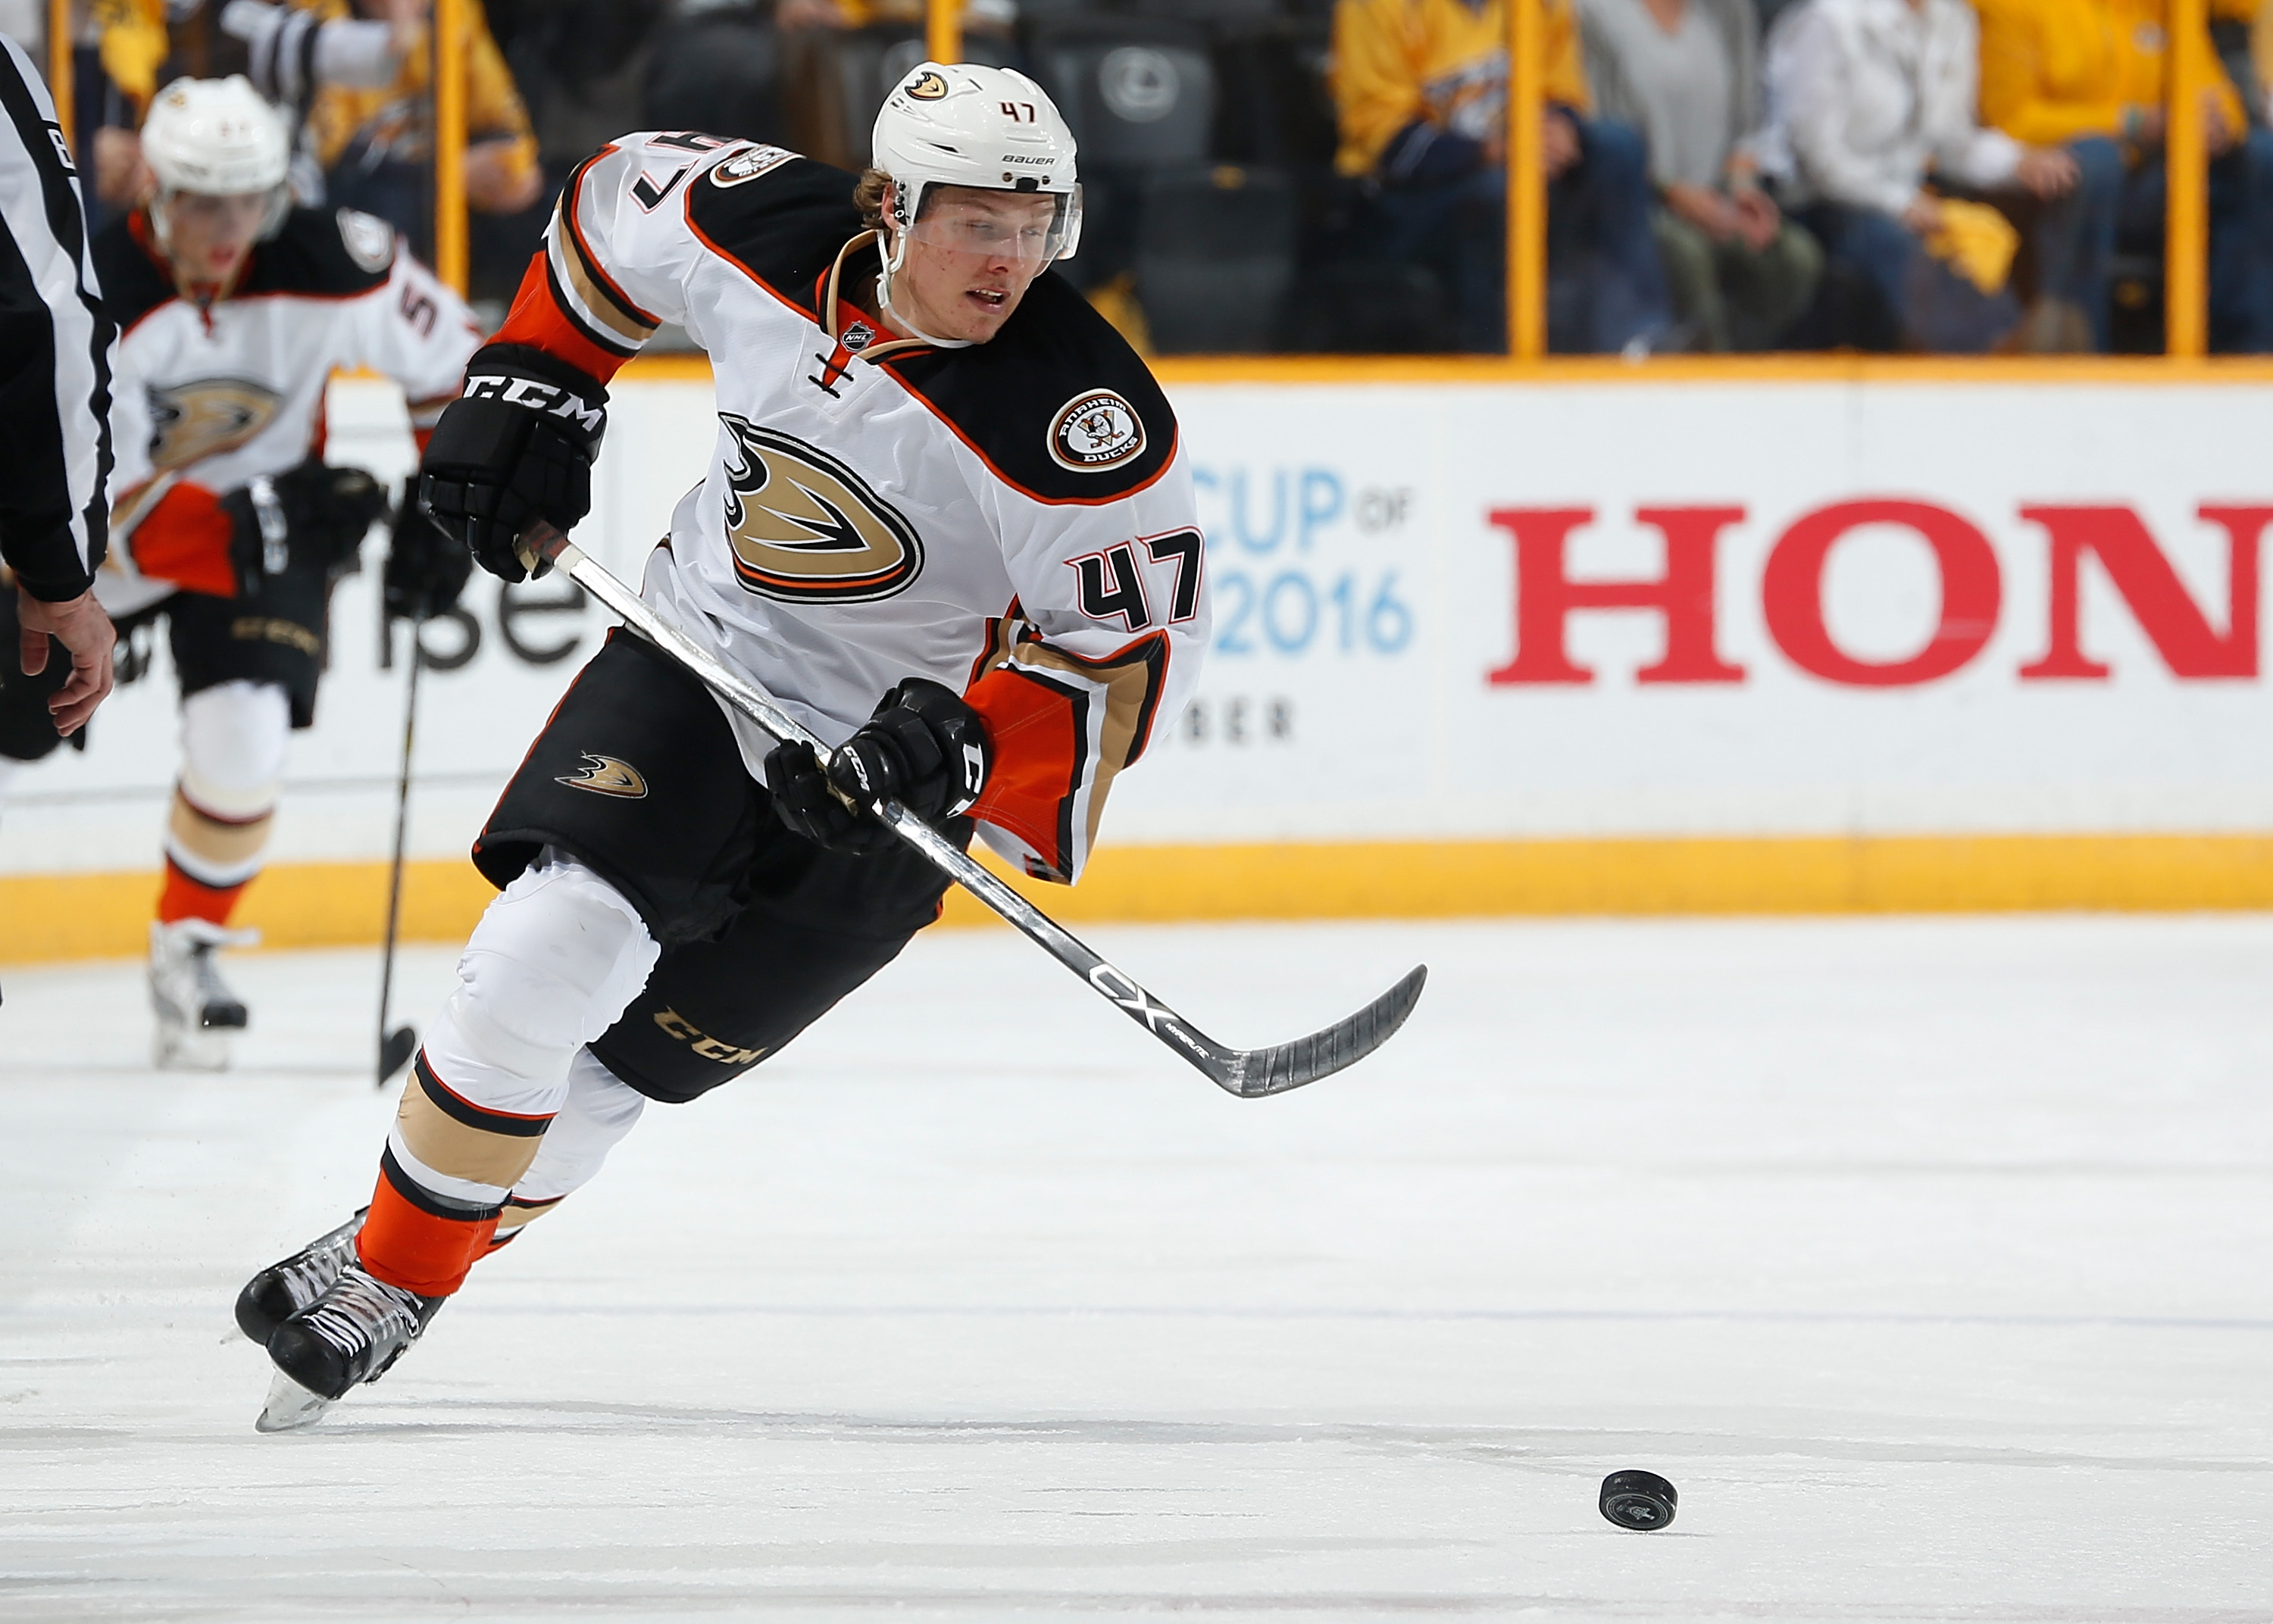 NHL Rumors: Hampus Lindholm agrees to six-year deal with Ducks